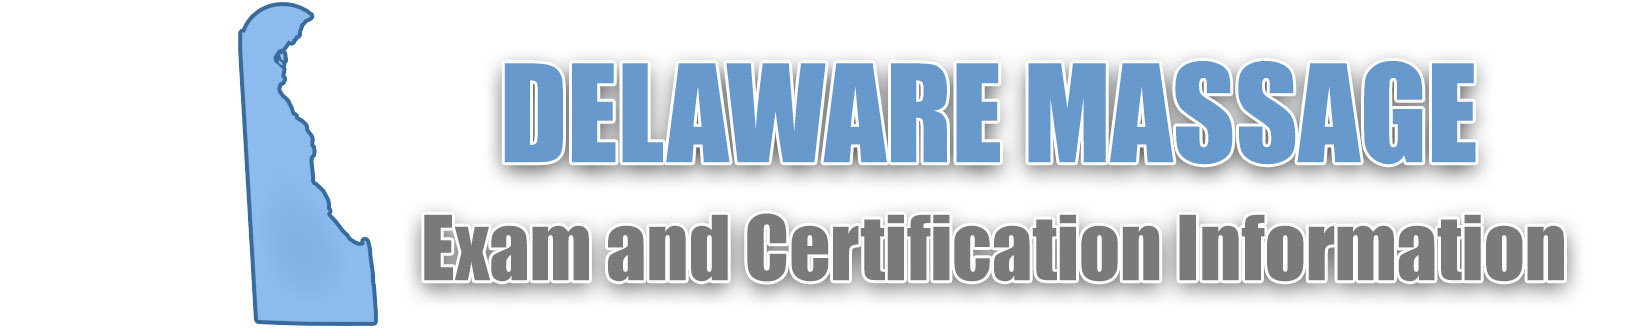 Delaware MBLEX Massage Exam and Certification Information